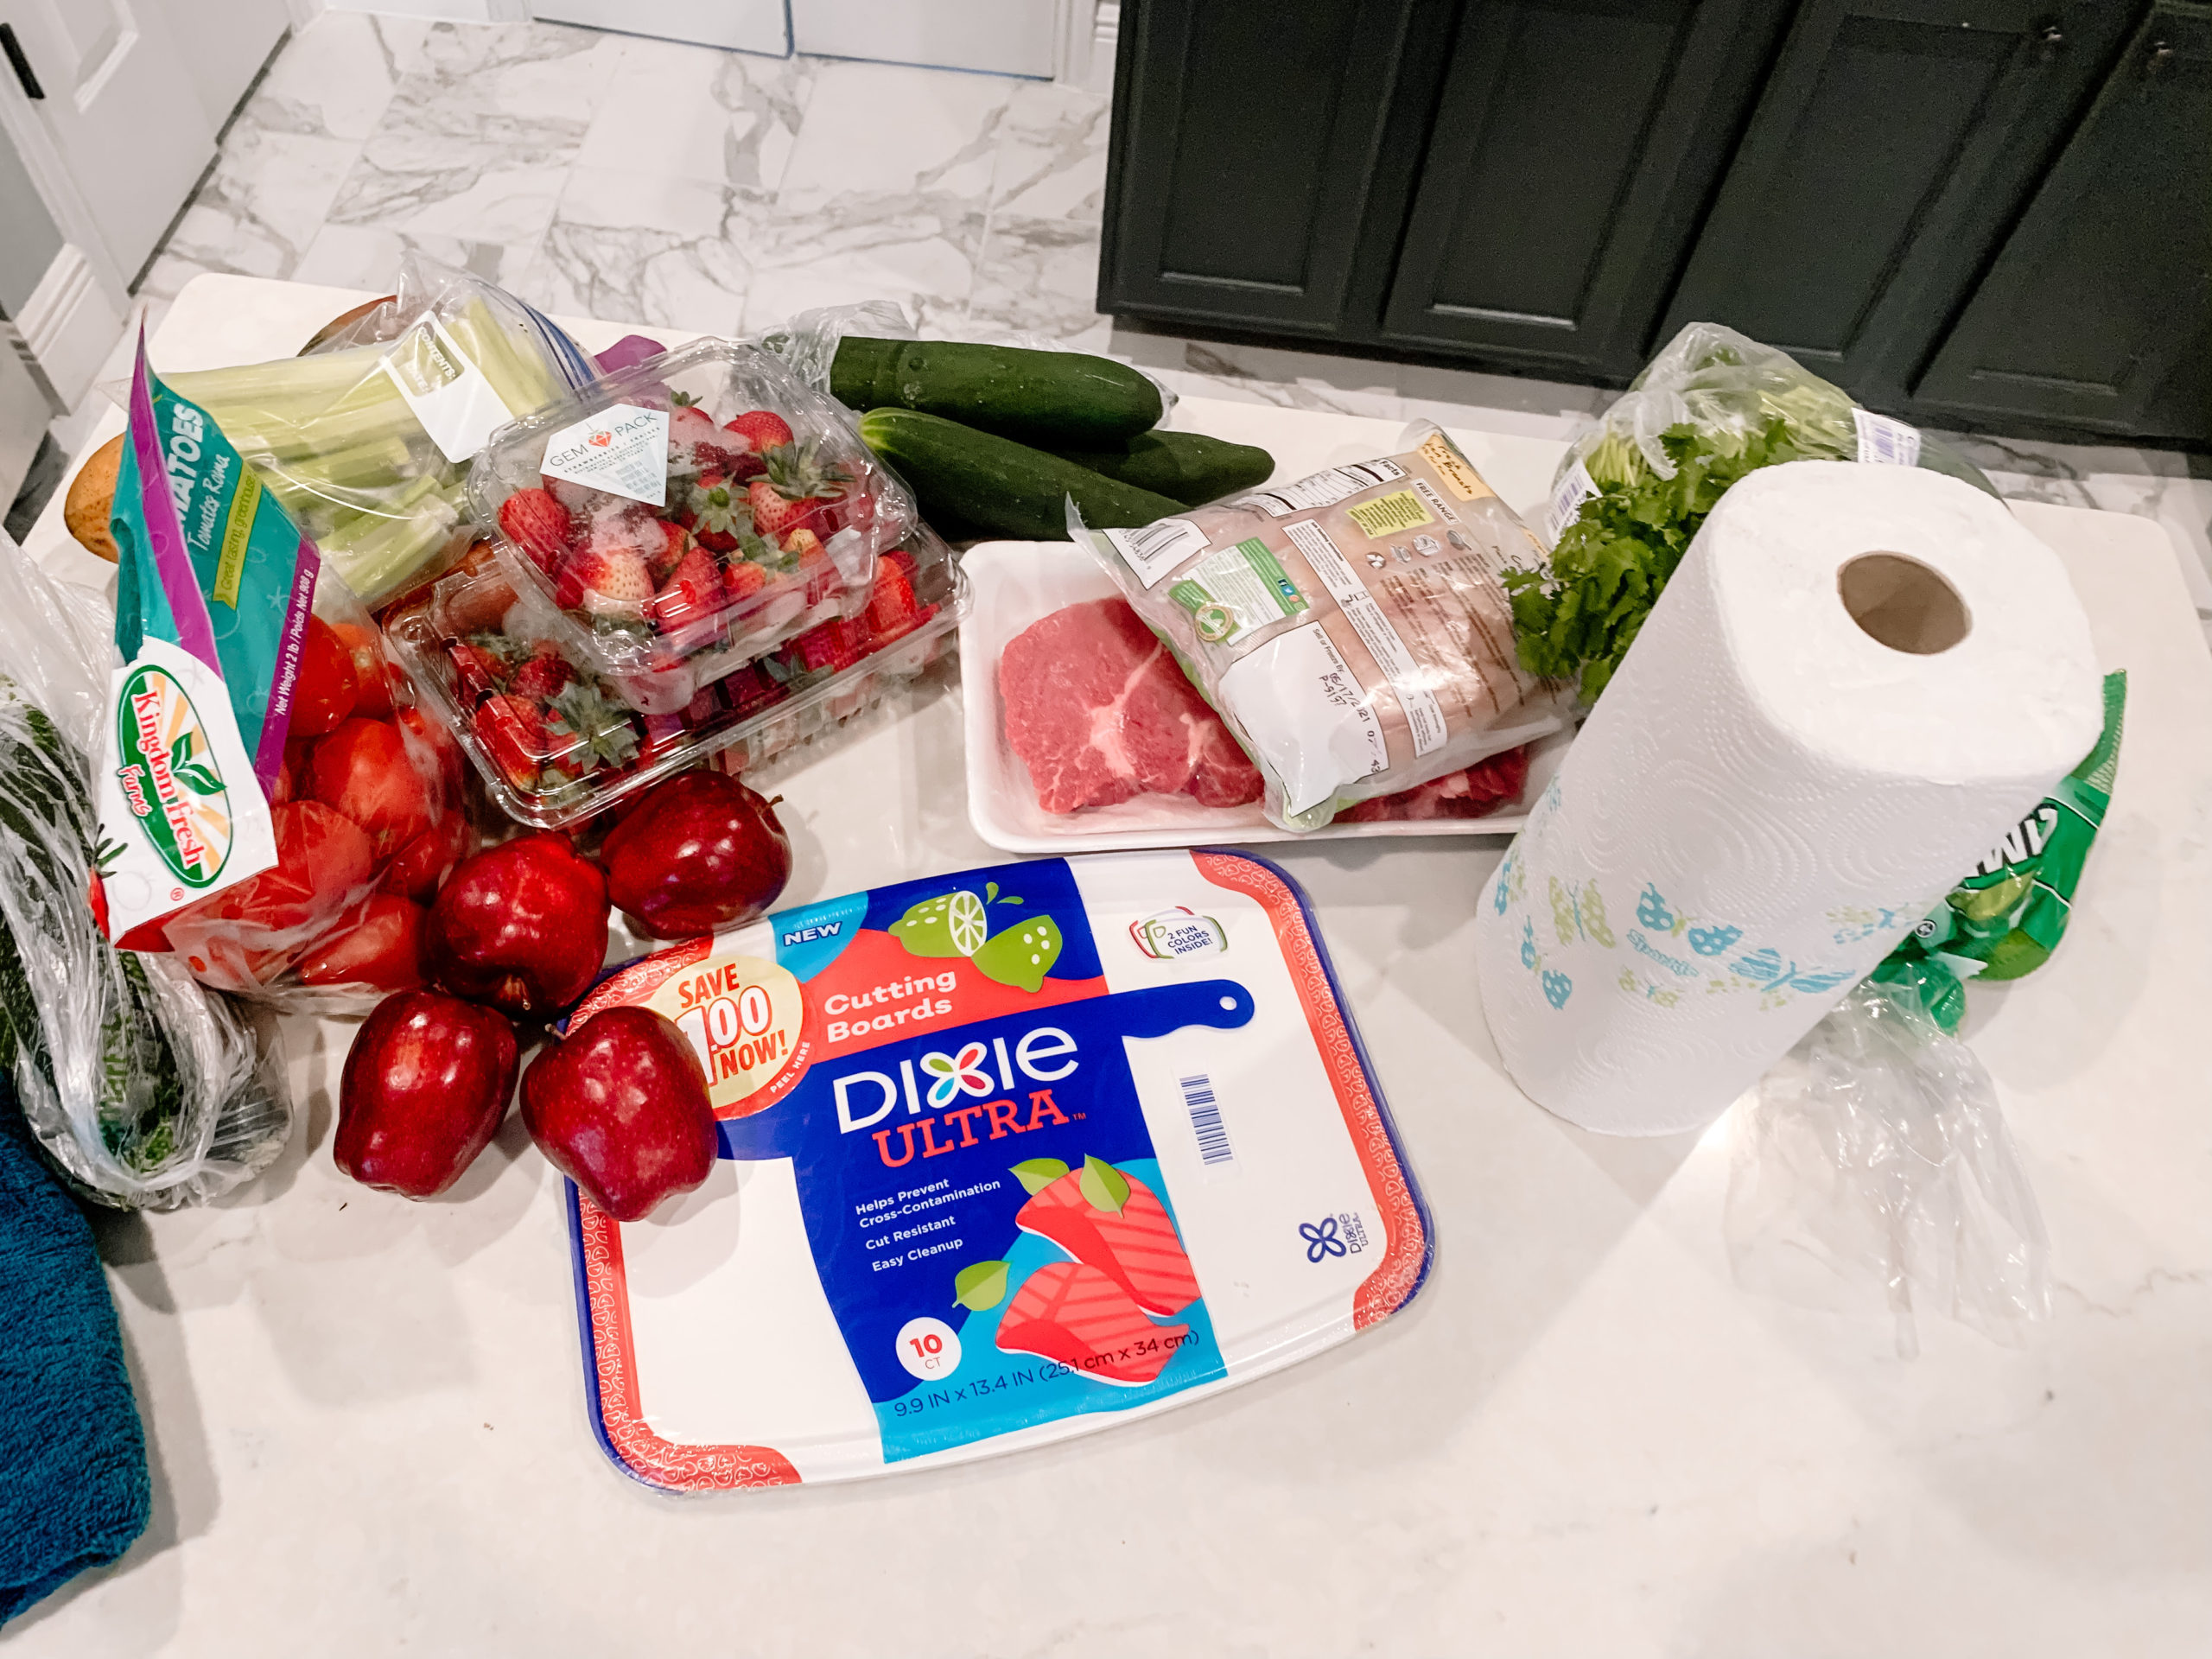 disosable cutting boards, meal planning